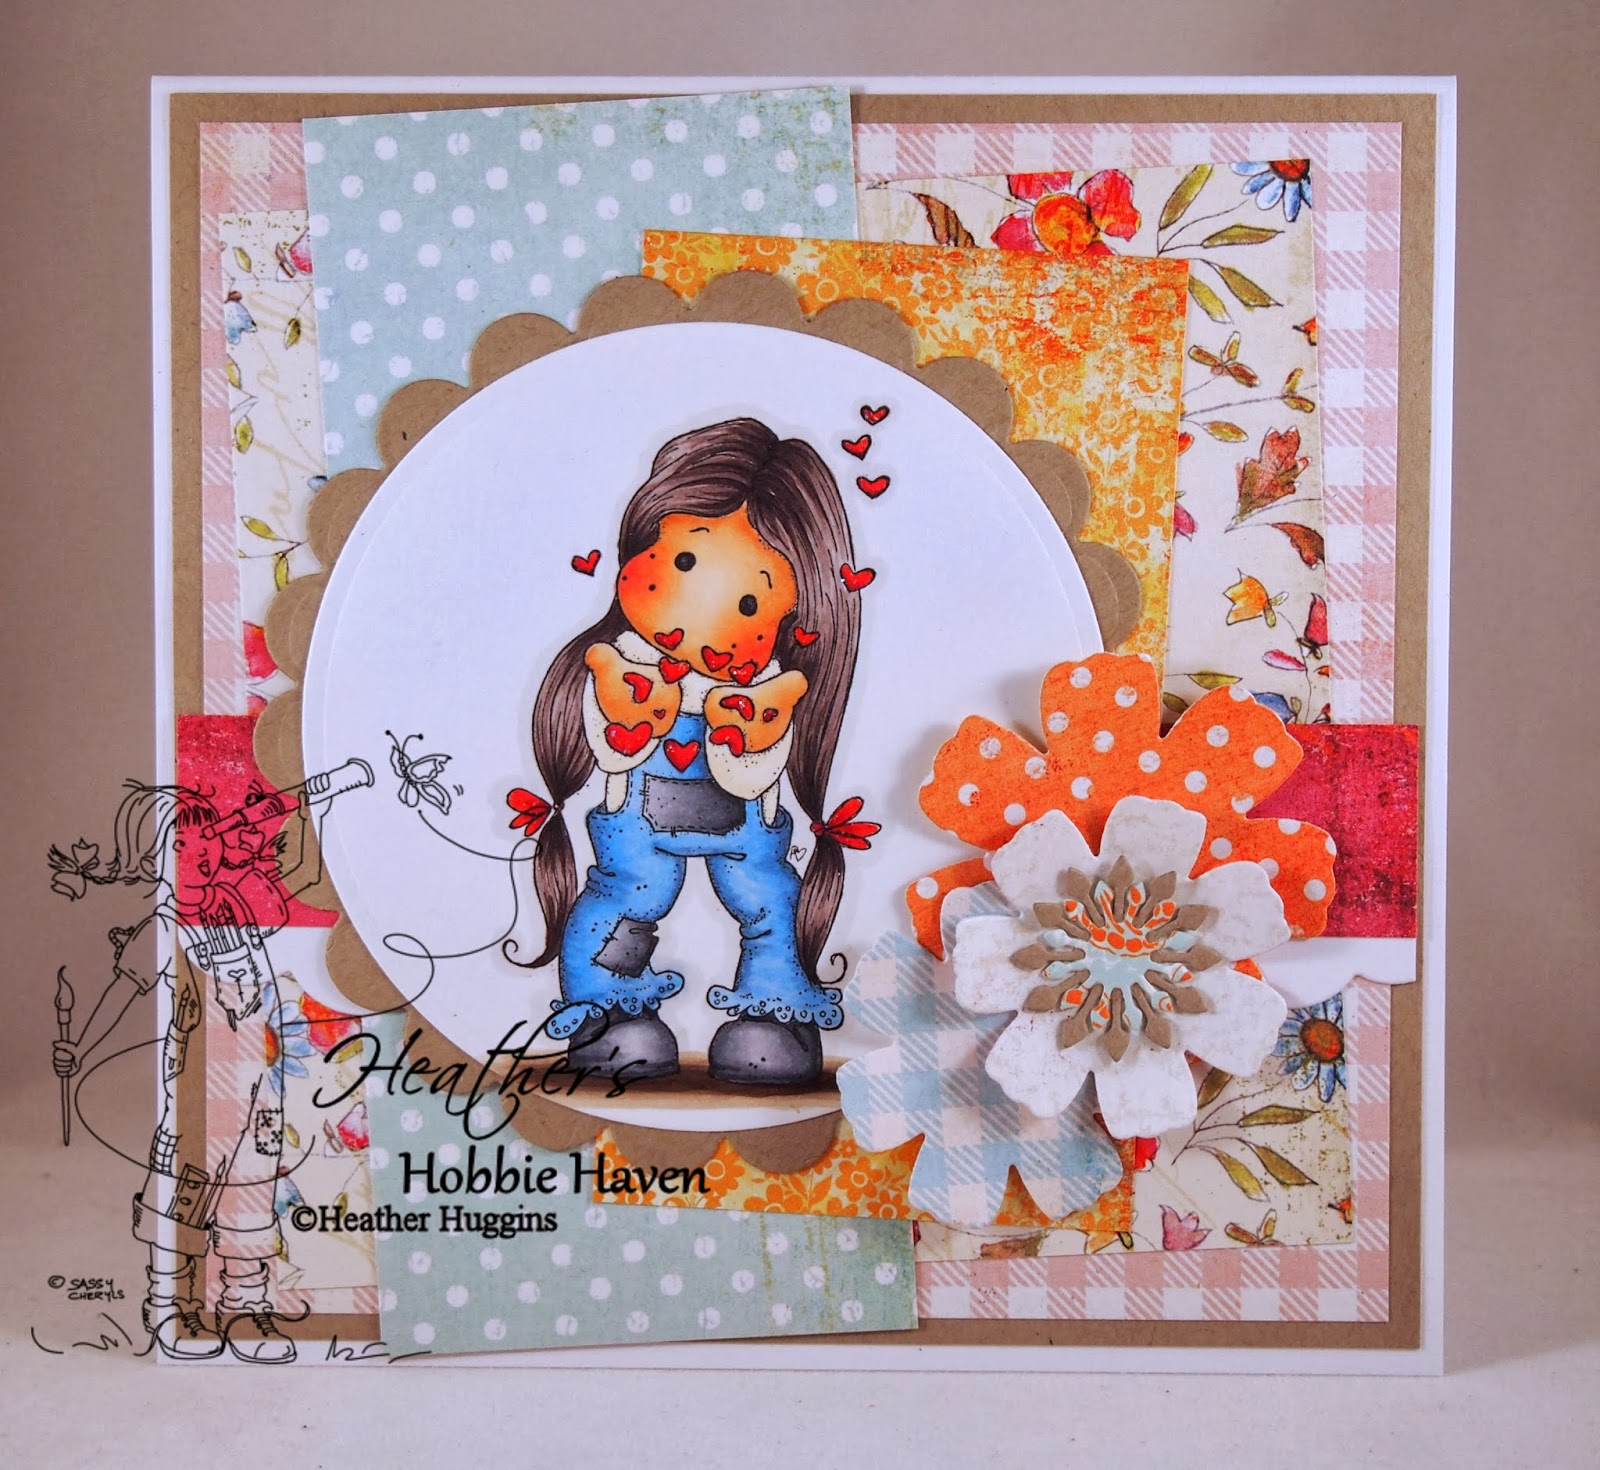 Heather's Hobbie Haven - Tilda Blowing Hearts Card Kit